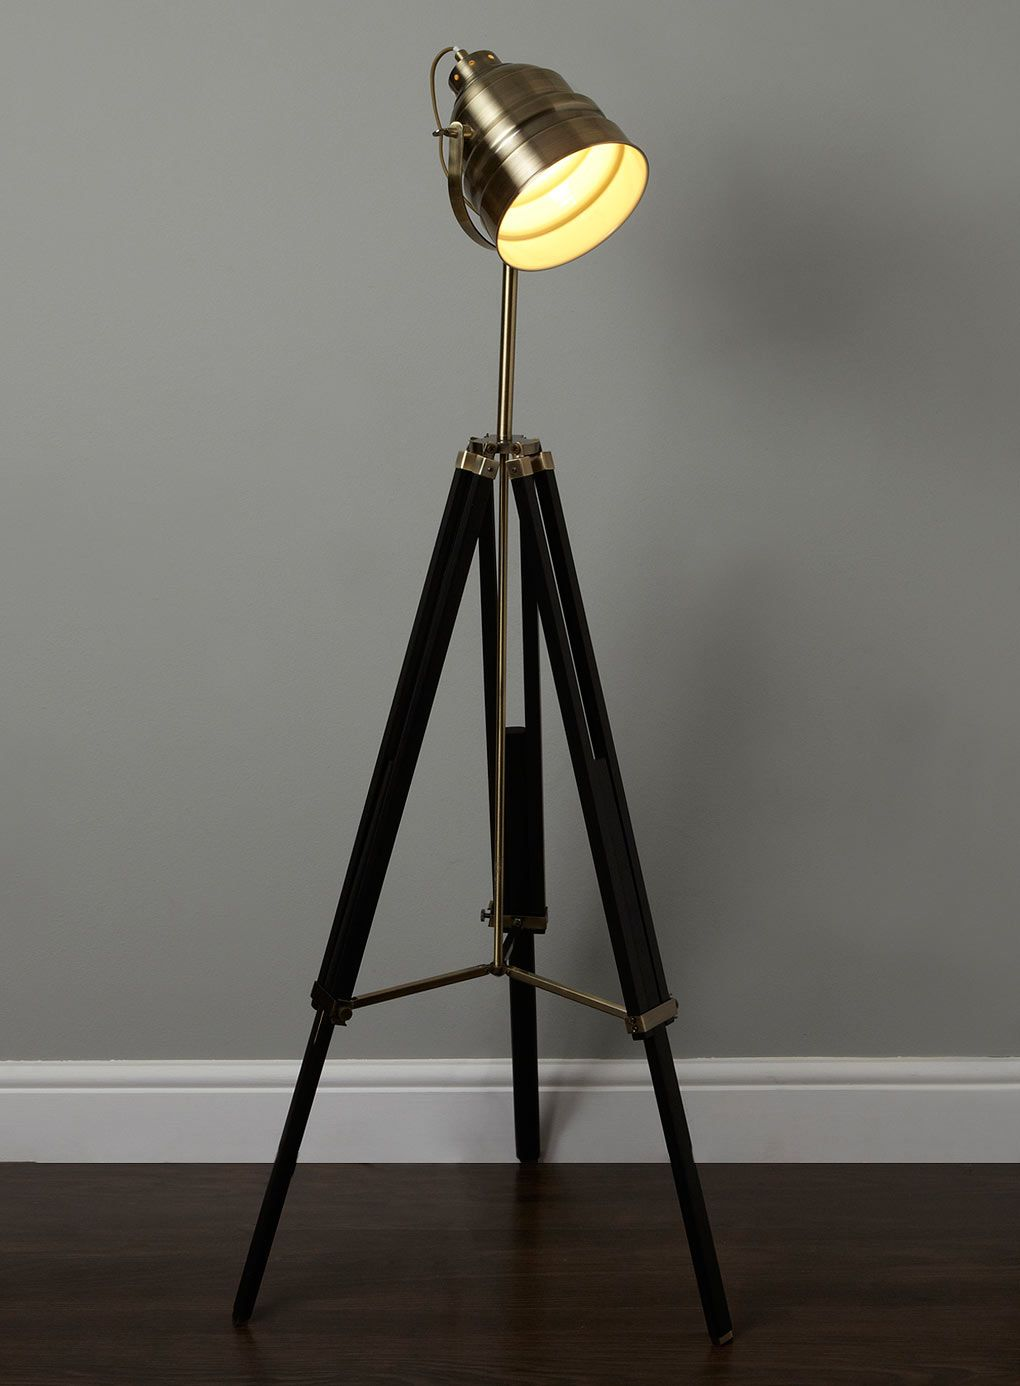 Camera tripod lamp - British home stores | Wooden Lamps | Pinterest ...